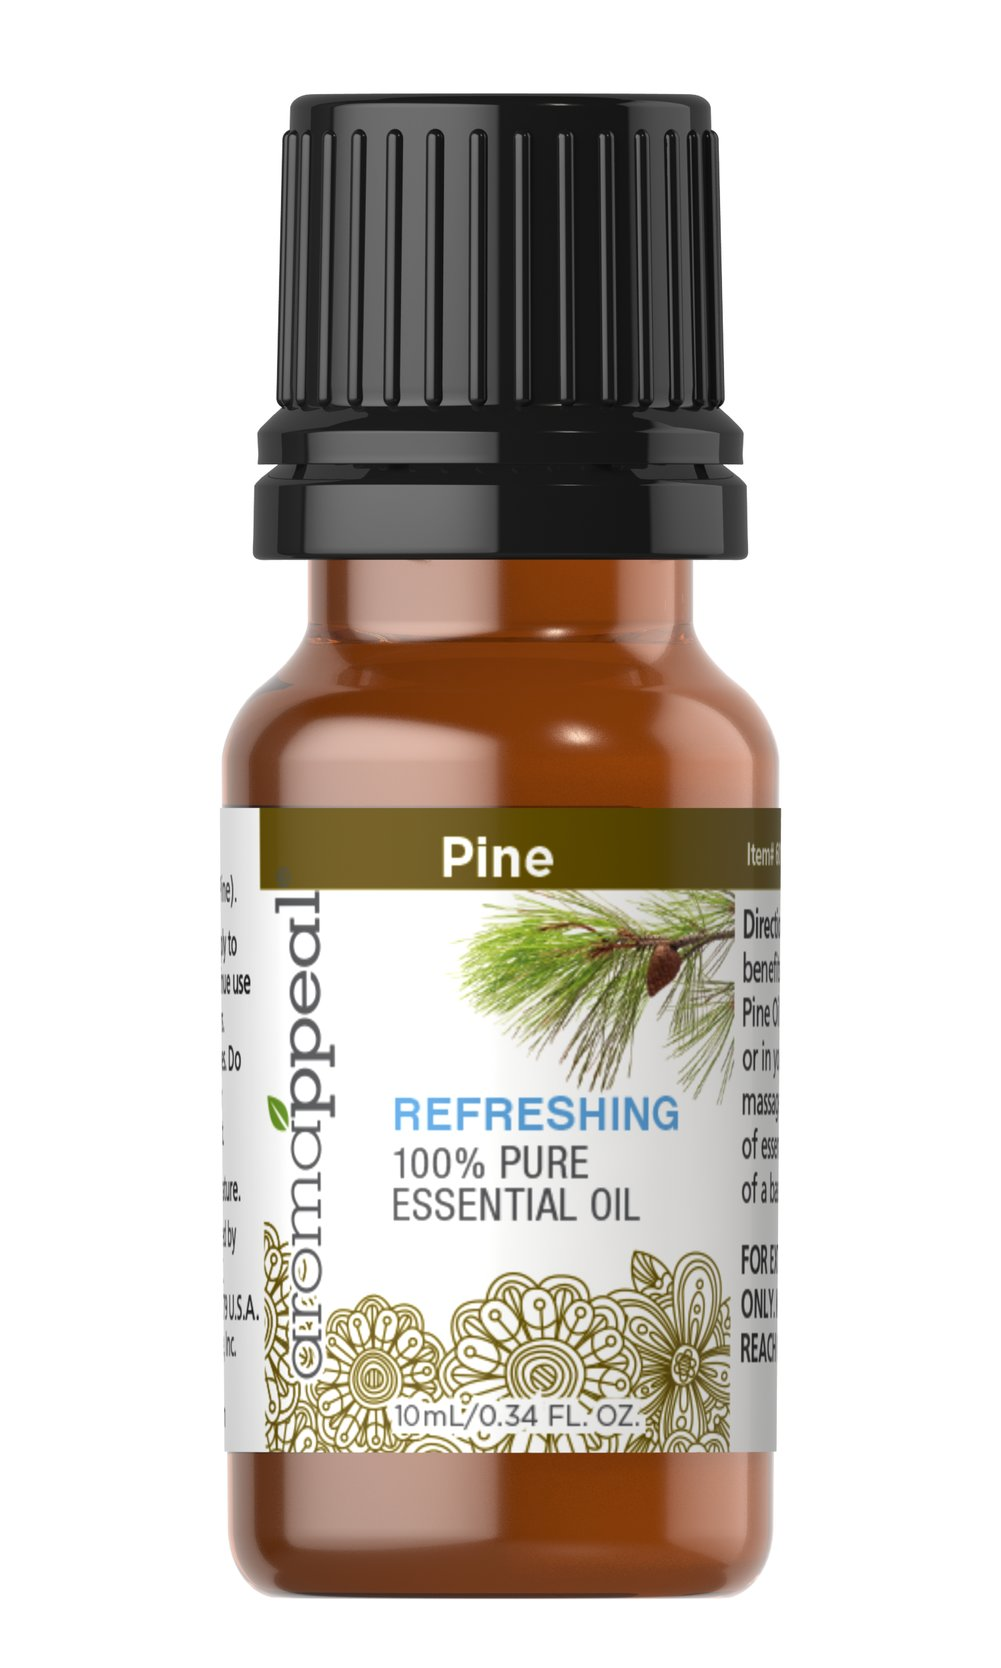 Pine 100% Pure Essential Oil